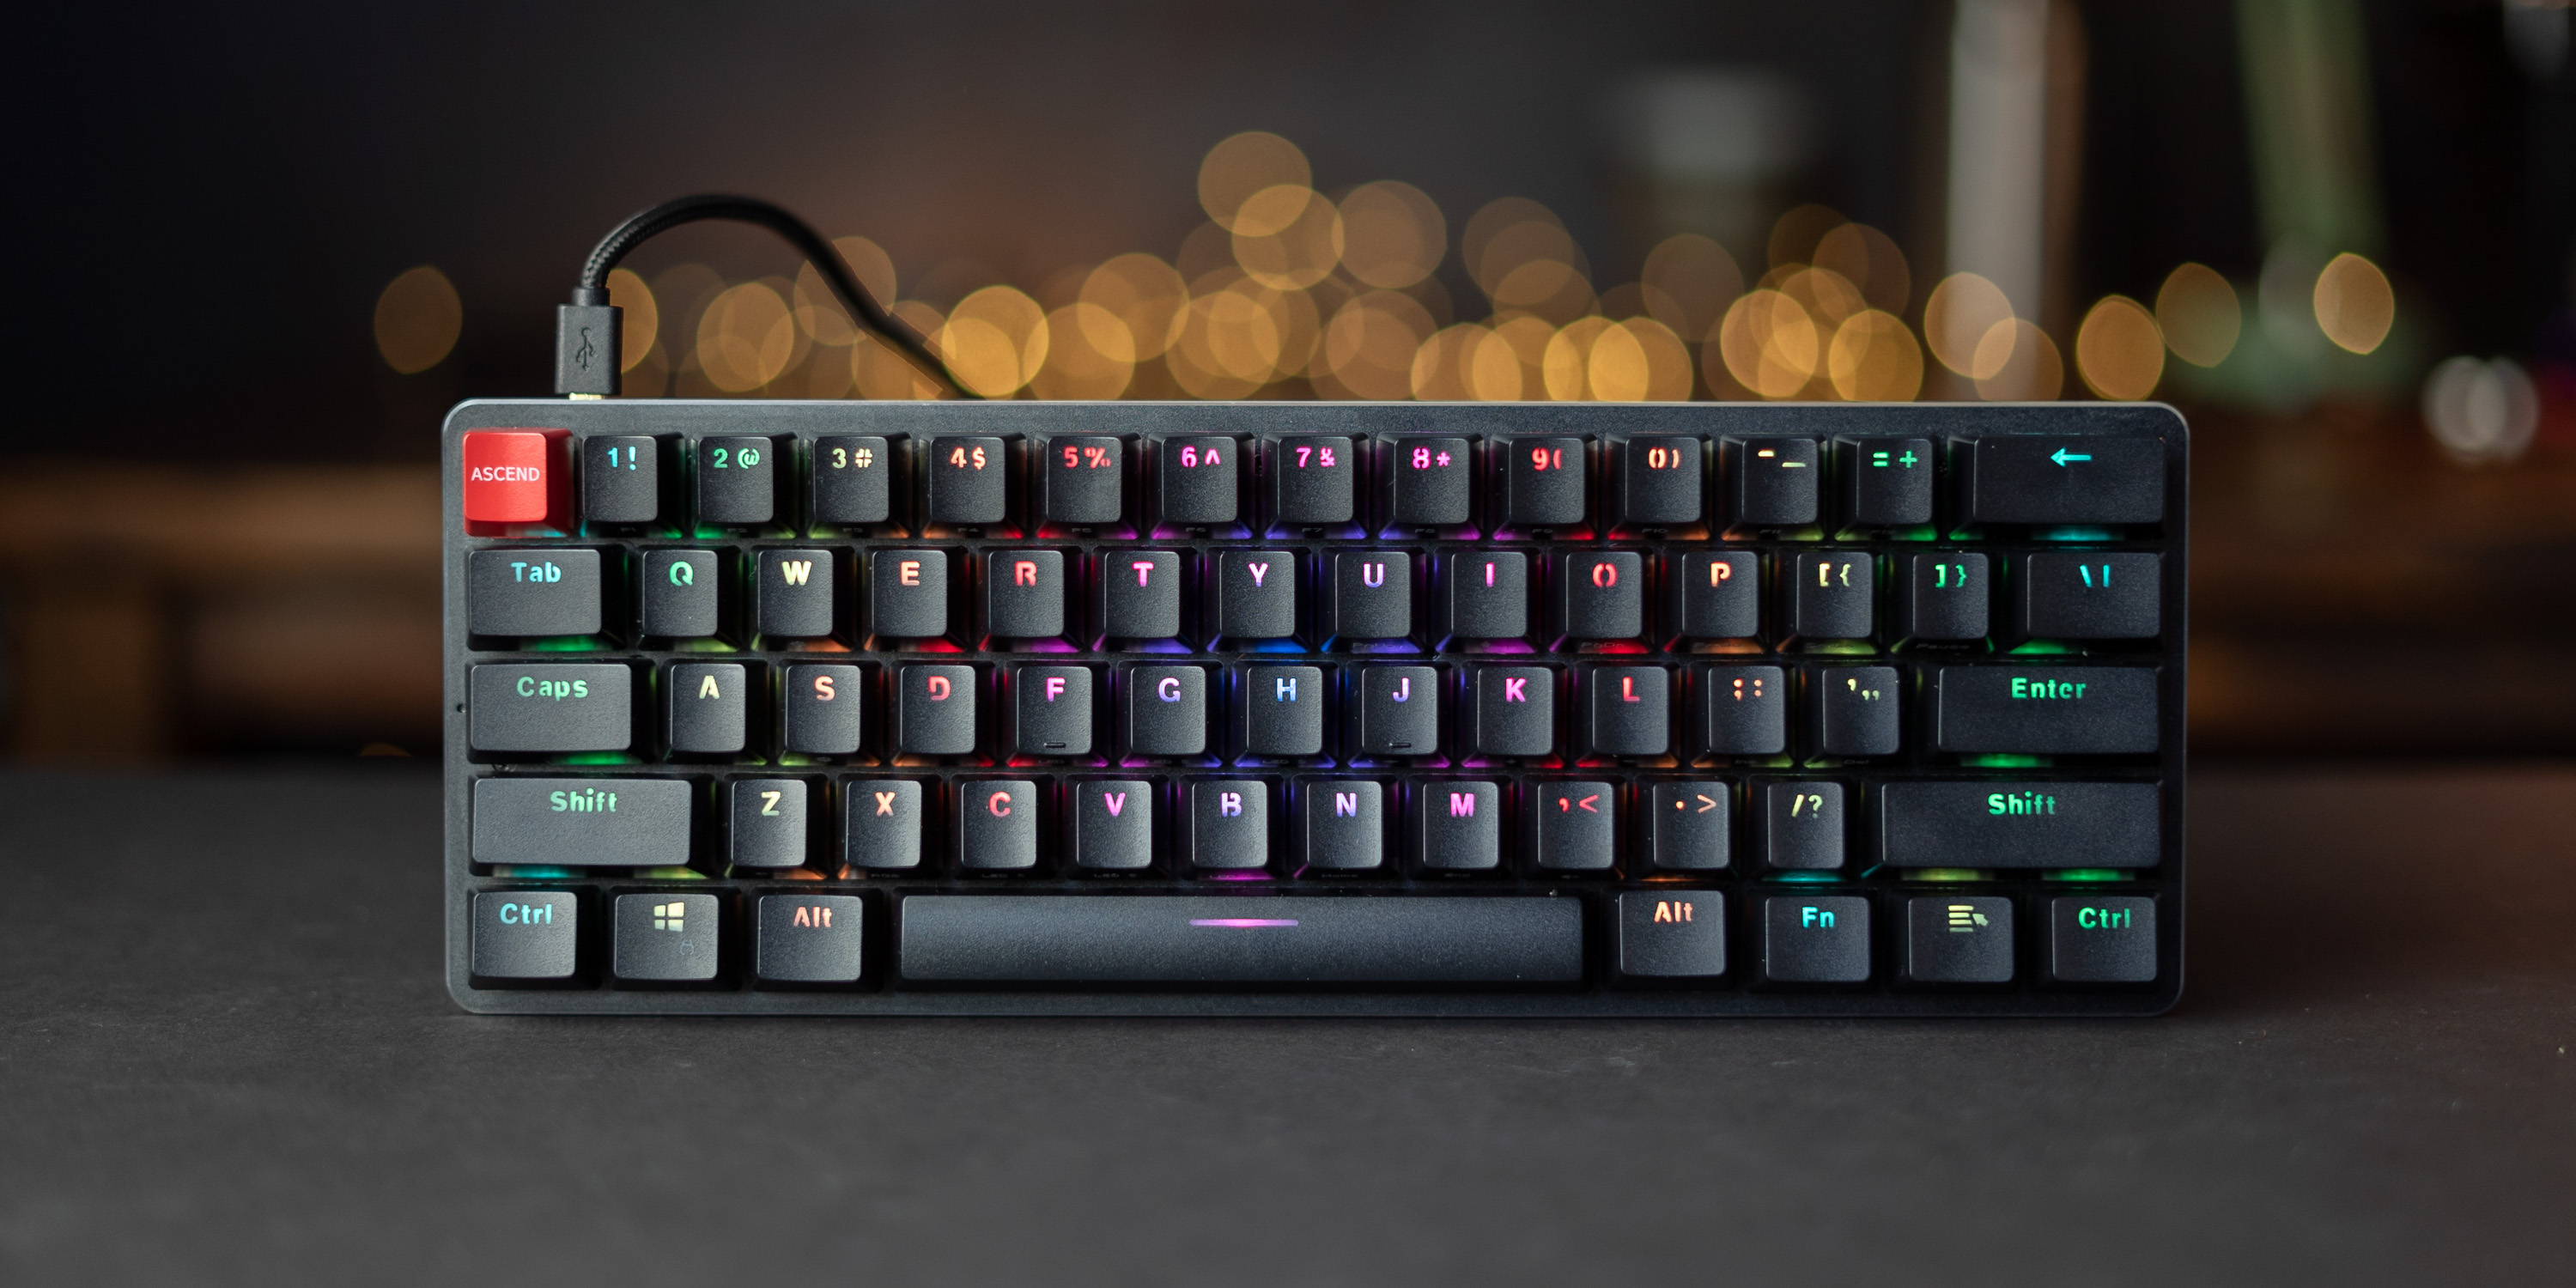 Hands-on with the Glorious GMMK Compact: Affordable custom keyboards